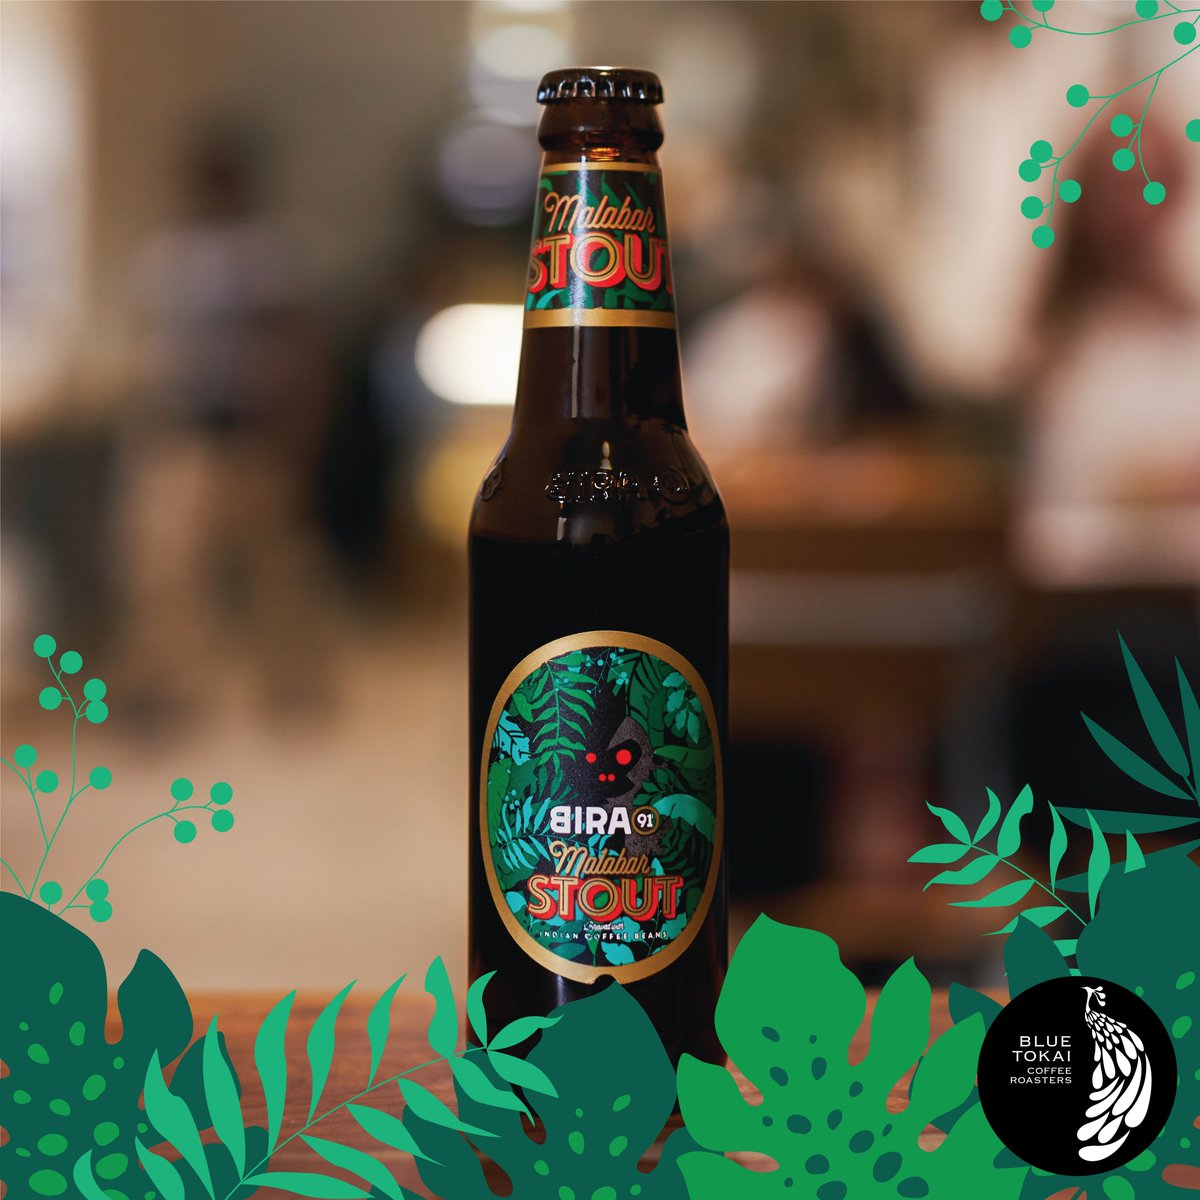 Our all-new Malabar Stout is a sessionable beer made with a custom batch of cold brew, in collaboration with @BlueTokaiCoffee 🍺...#LimitedRelease #AboutStout #CoolBrew #Bira91MalabarStout #Bira91Beers #Bira91 #Stout #CoffeeBeer